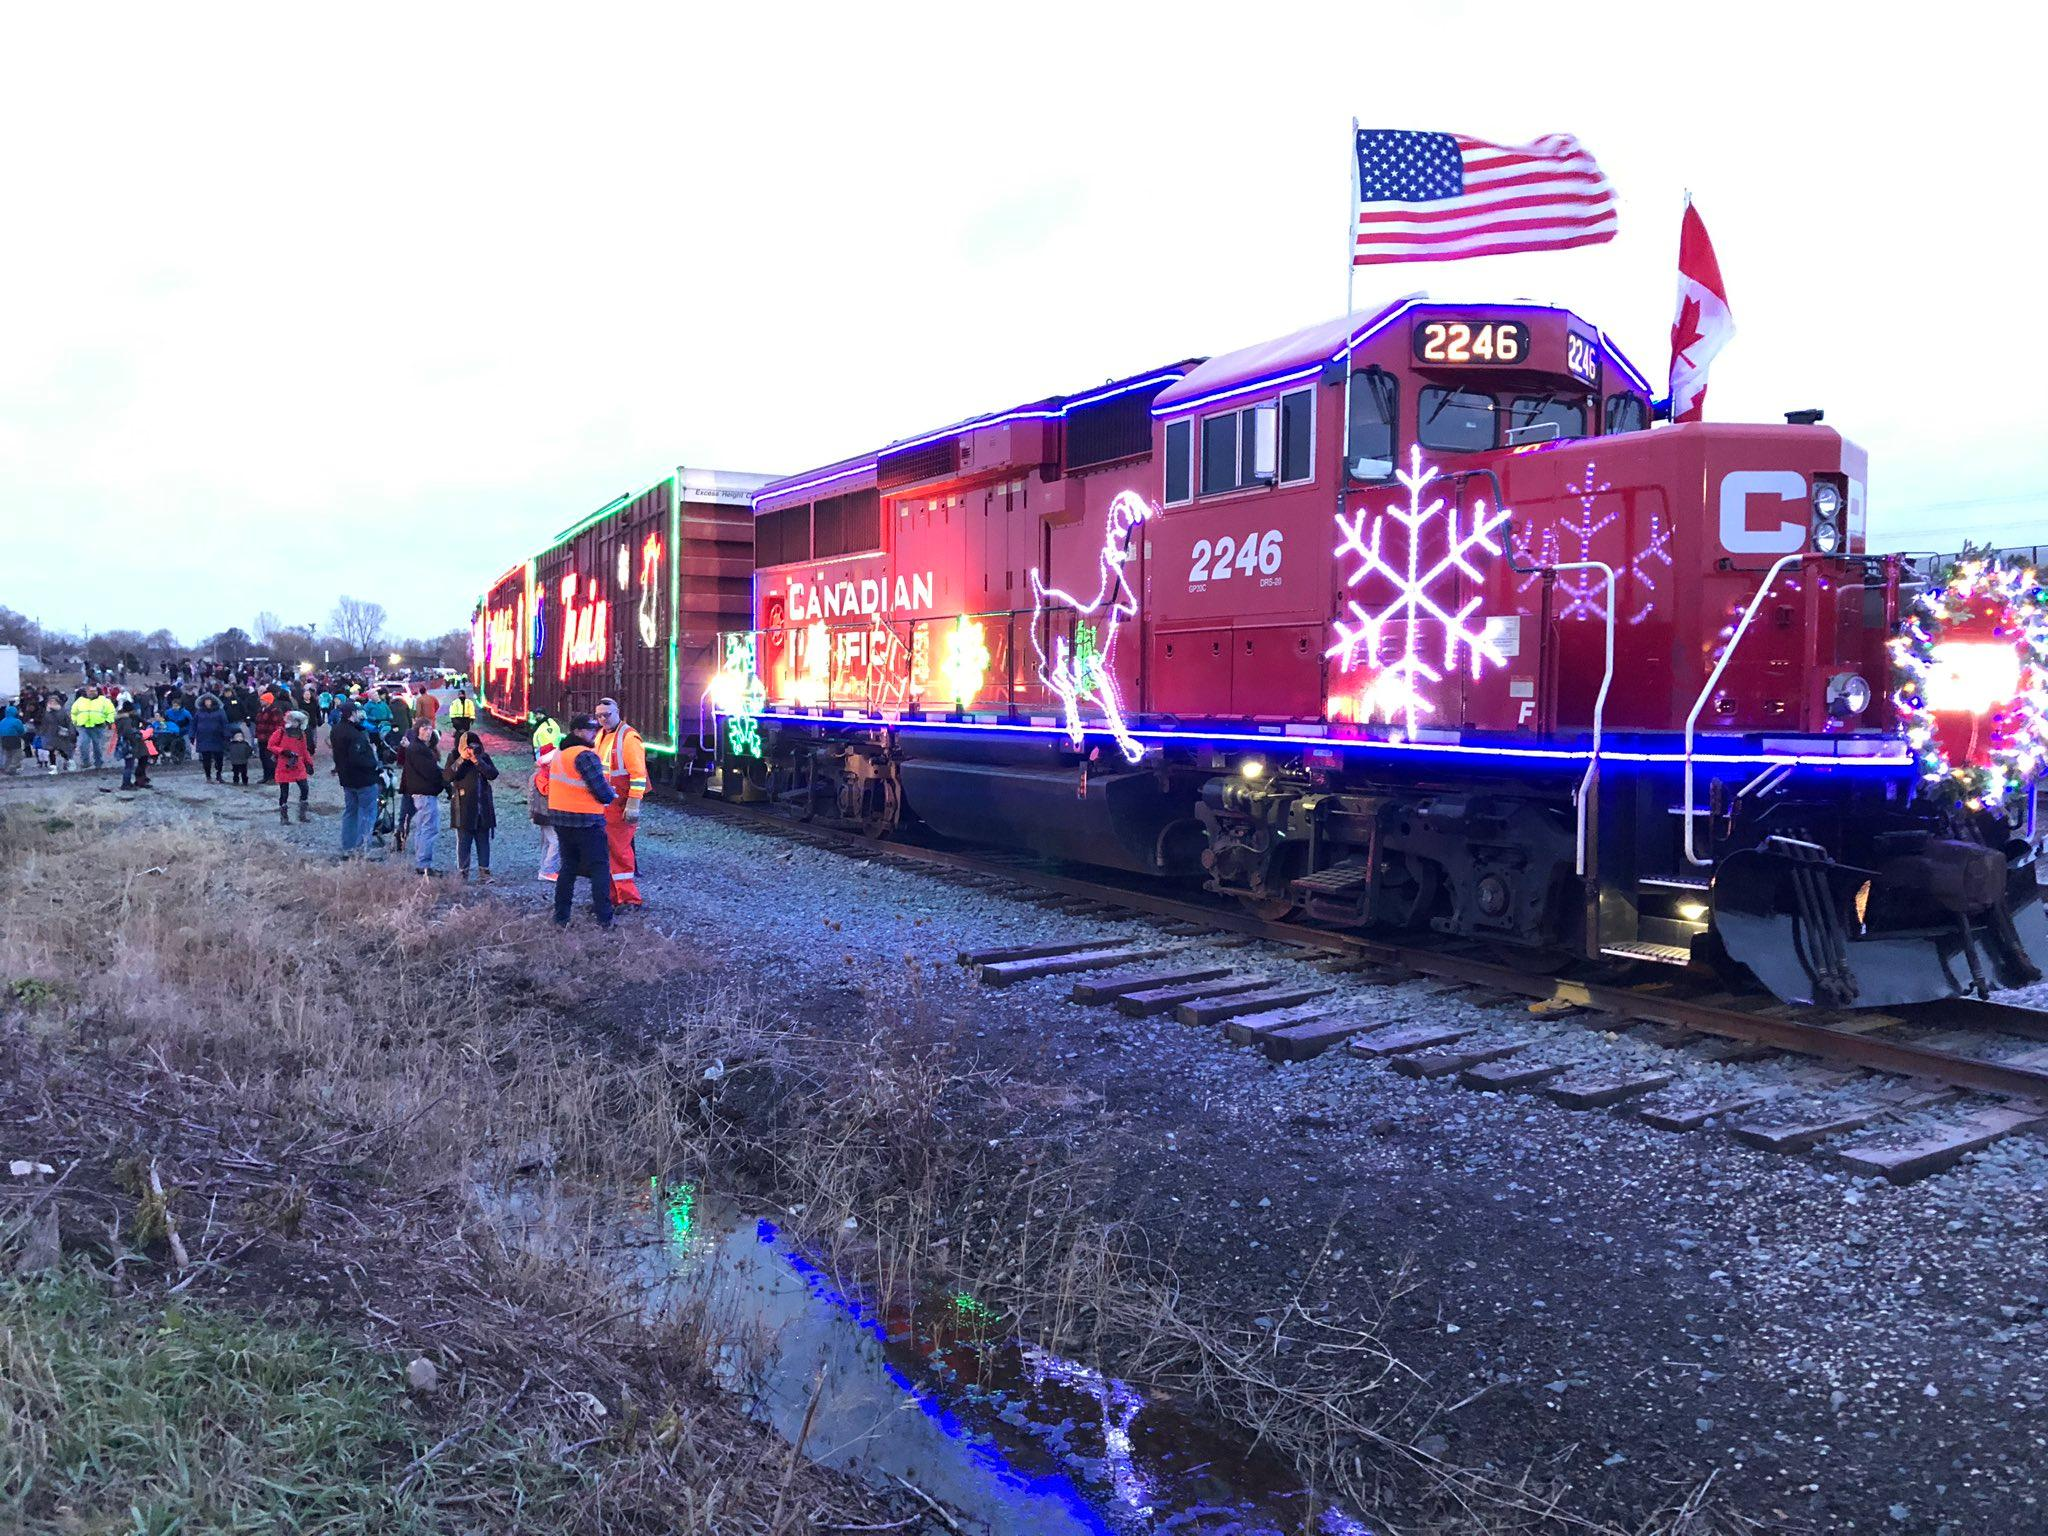 am800-news-canadian-pacific-rail-holiday-train-november-2019